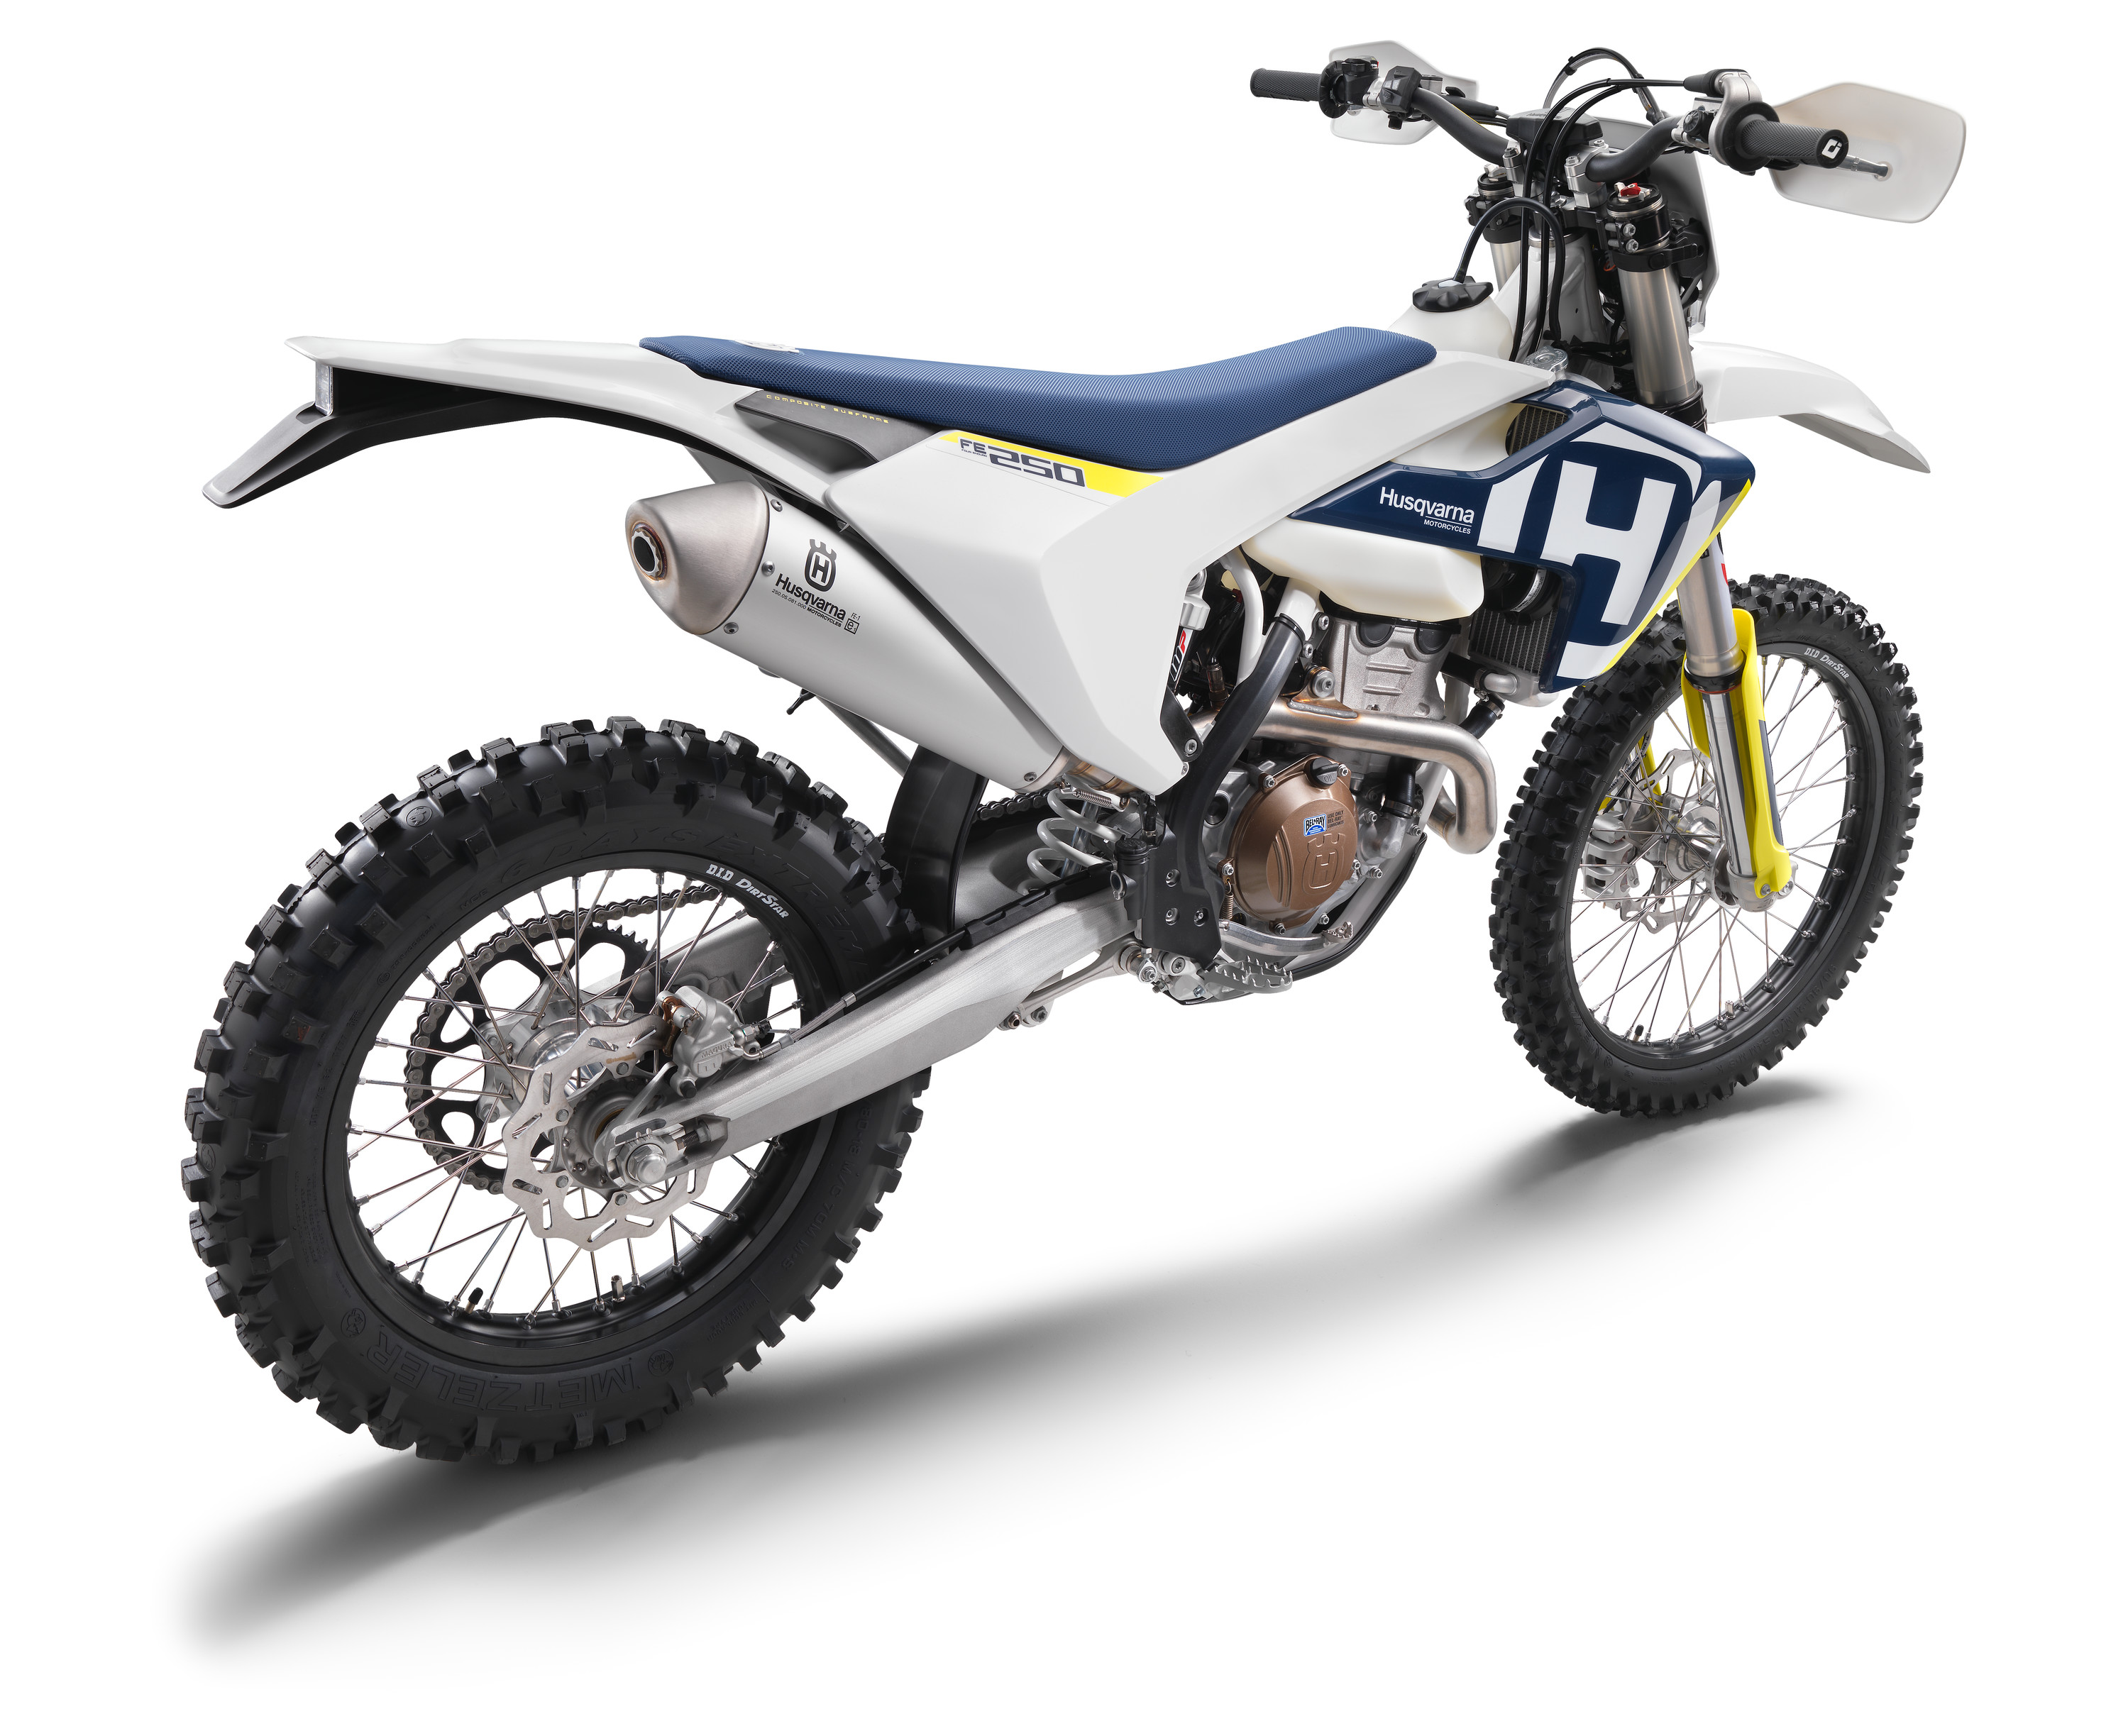 Road to 2-stroke fuel injection | Husqvarna Motorcycles